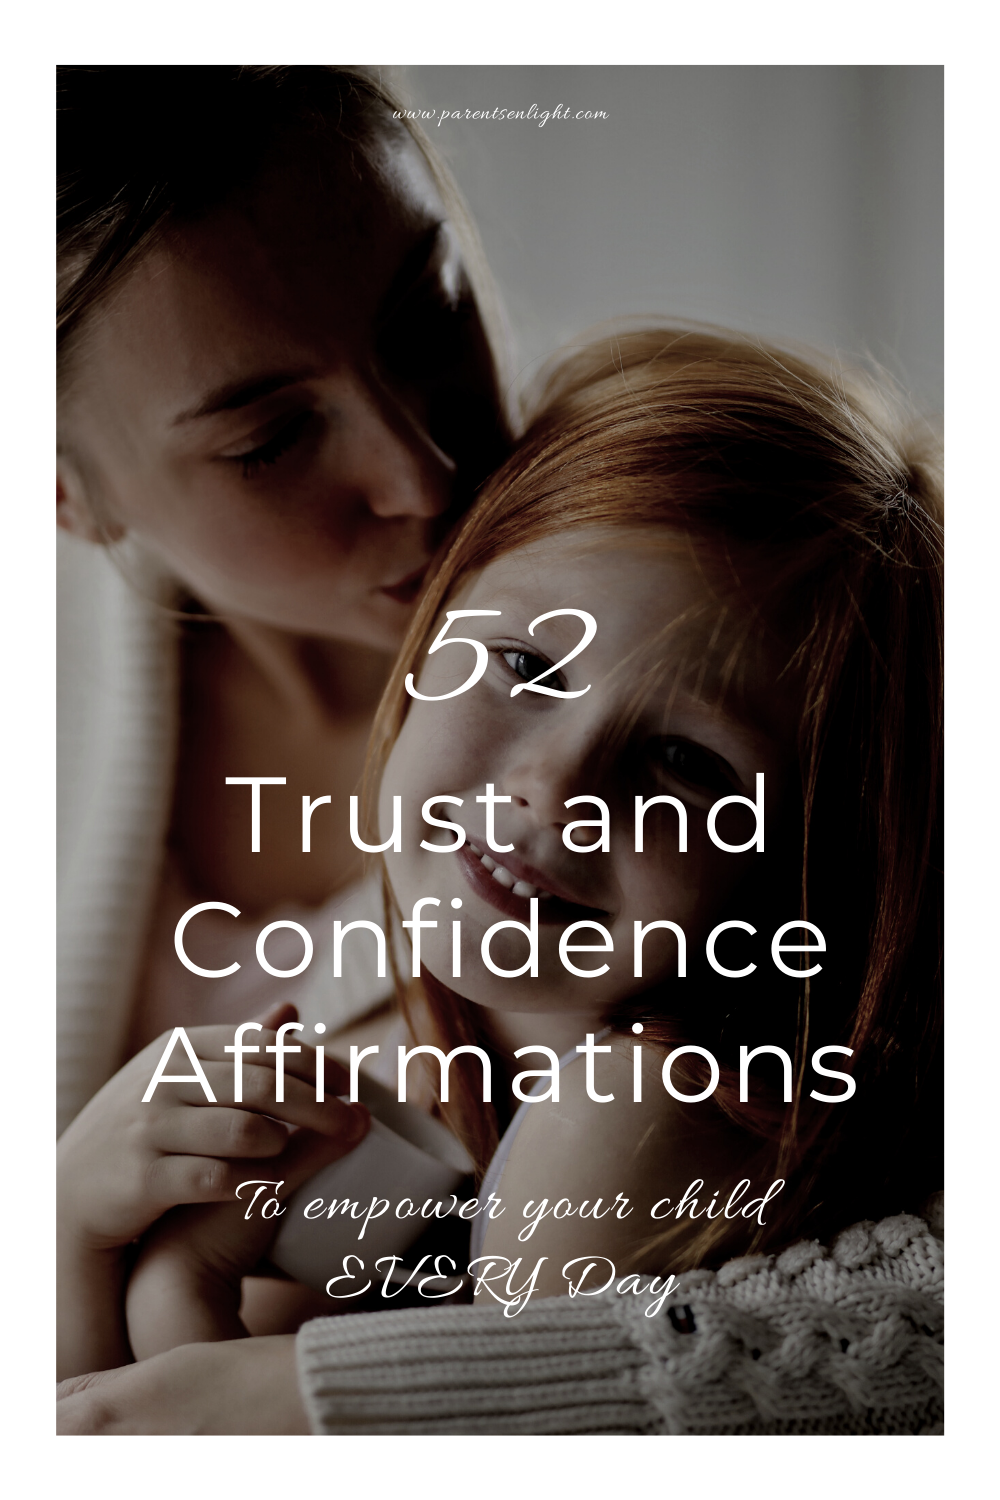 Our children's confidence, self-esteem, ad their ability to trust themselves and the world is (mostly) in our hands. Use these affirmations to raise a confident, happy child #affirmations #positiveparenting #gentleparenting #honestkids #truth #tellthetruth #chillddevelopment #parentingtips #brainscience #parentingadvice #parenting #toddlers #preschoolers #raisingkids #consciousparenting #positivediscipline #sciencebasedparenting